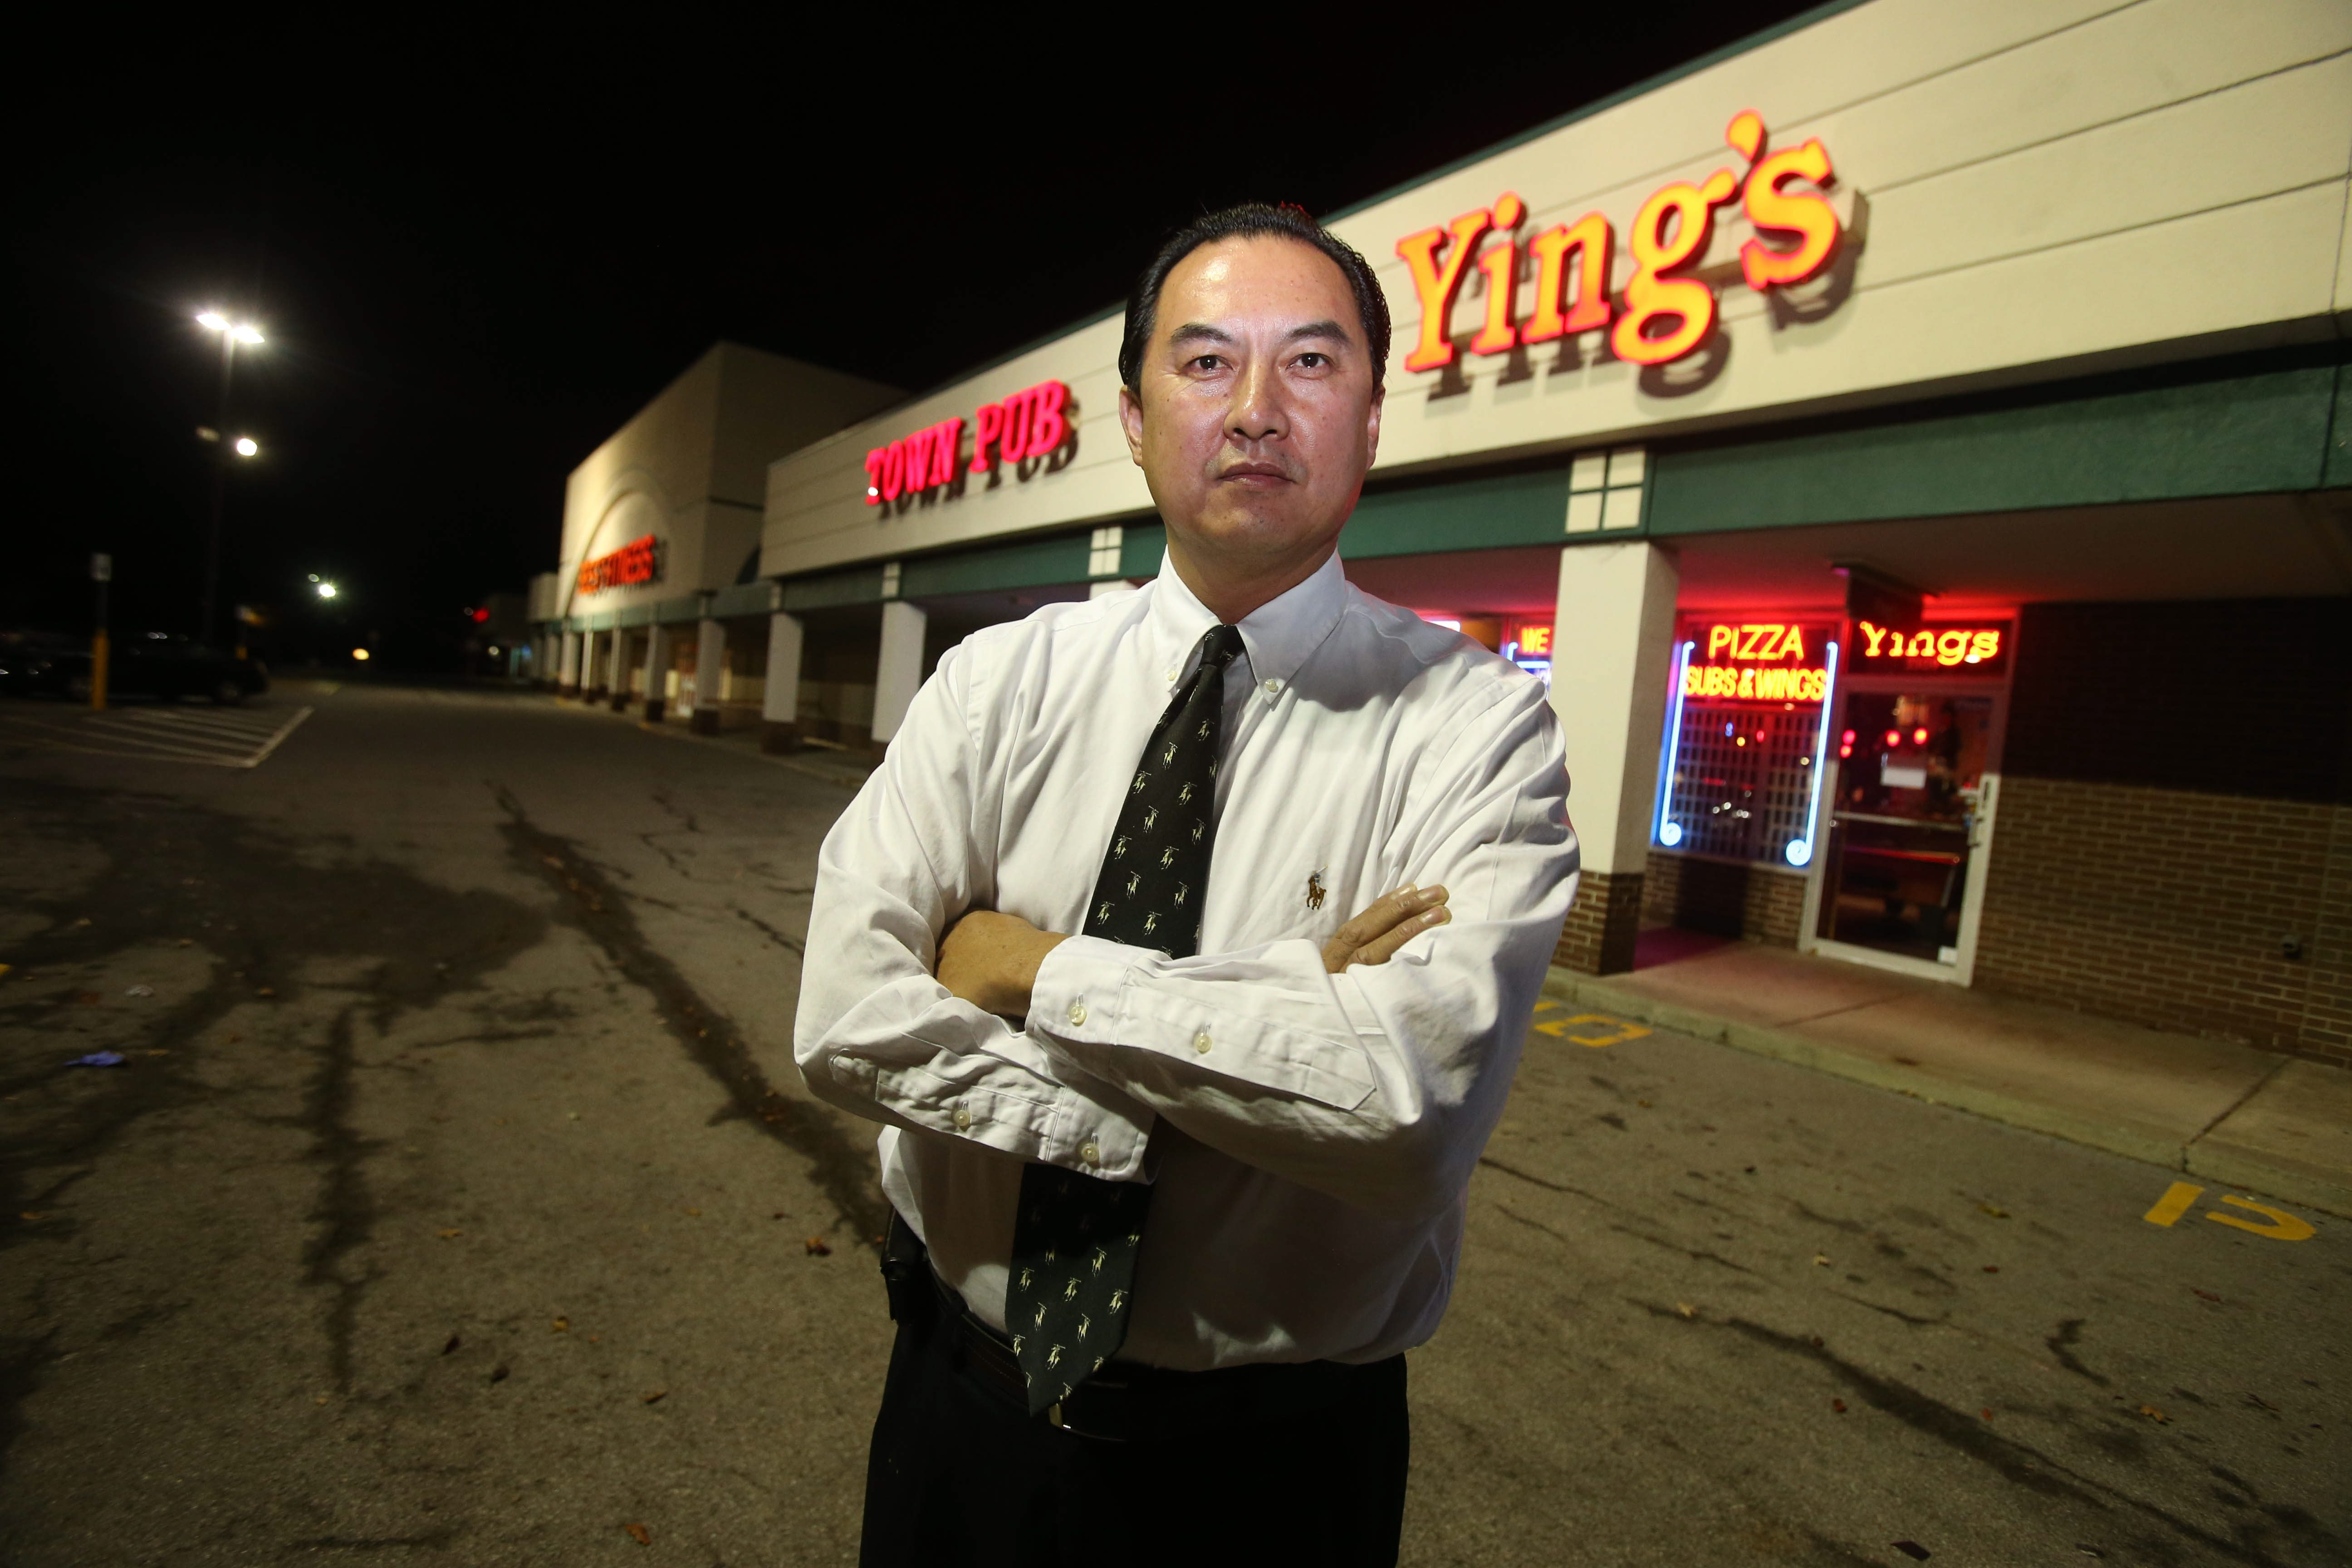 Jimmy Ying, owner of a restaurant at Sheridan Drive and Eggert Road where there was a non-alcohol DJ party, was taken into custody briefly on nuisance charge after gunfire in parking lot.